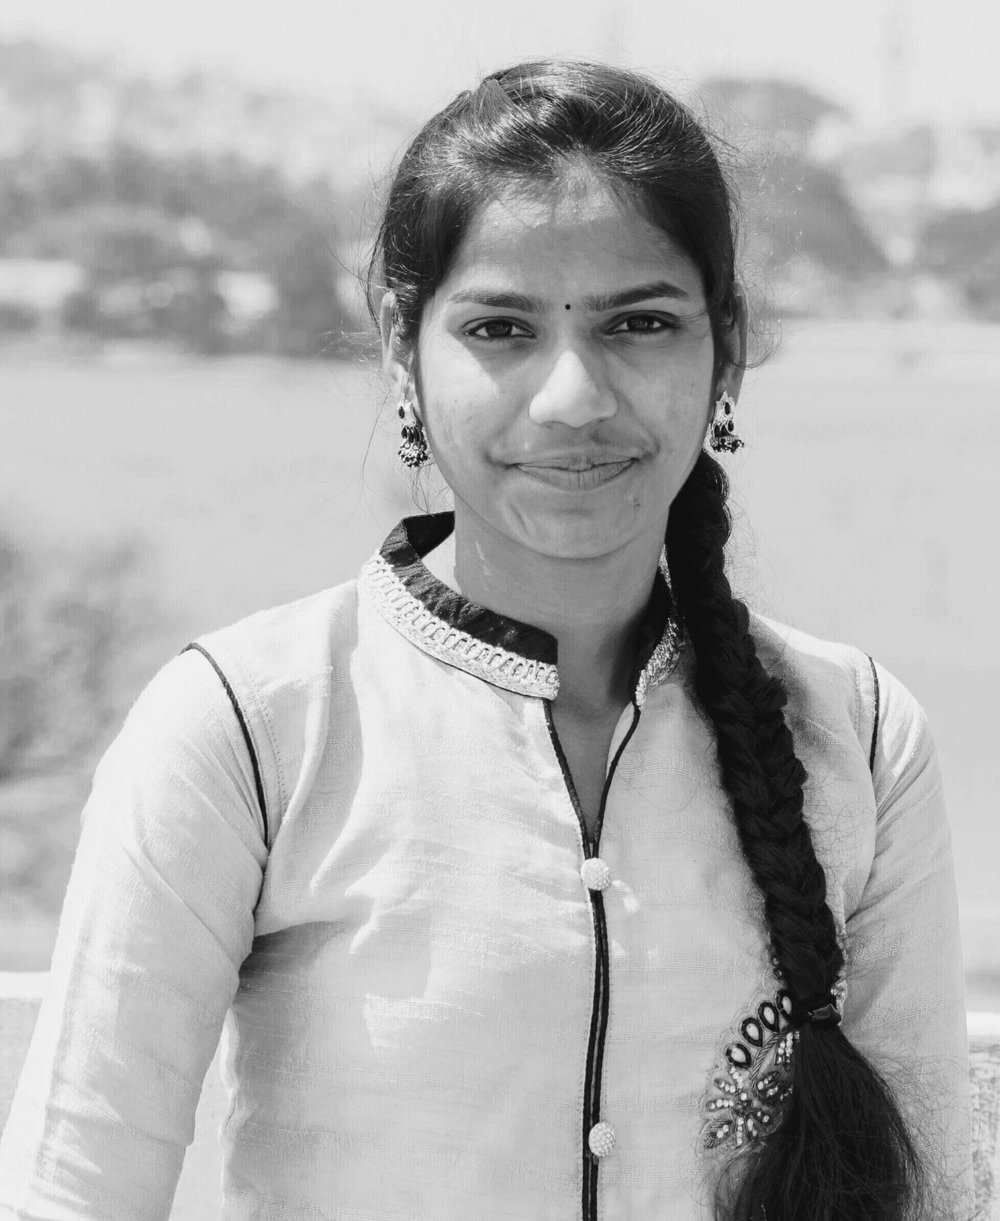 Jansi Rani, - a graduate in Civil Engineering, has experience in Estimation and Costing of large scale to small scale projects.Qualification:B.E civil- Government College of Engineering, Dharmapuri.